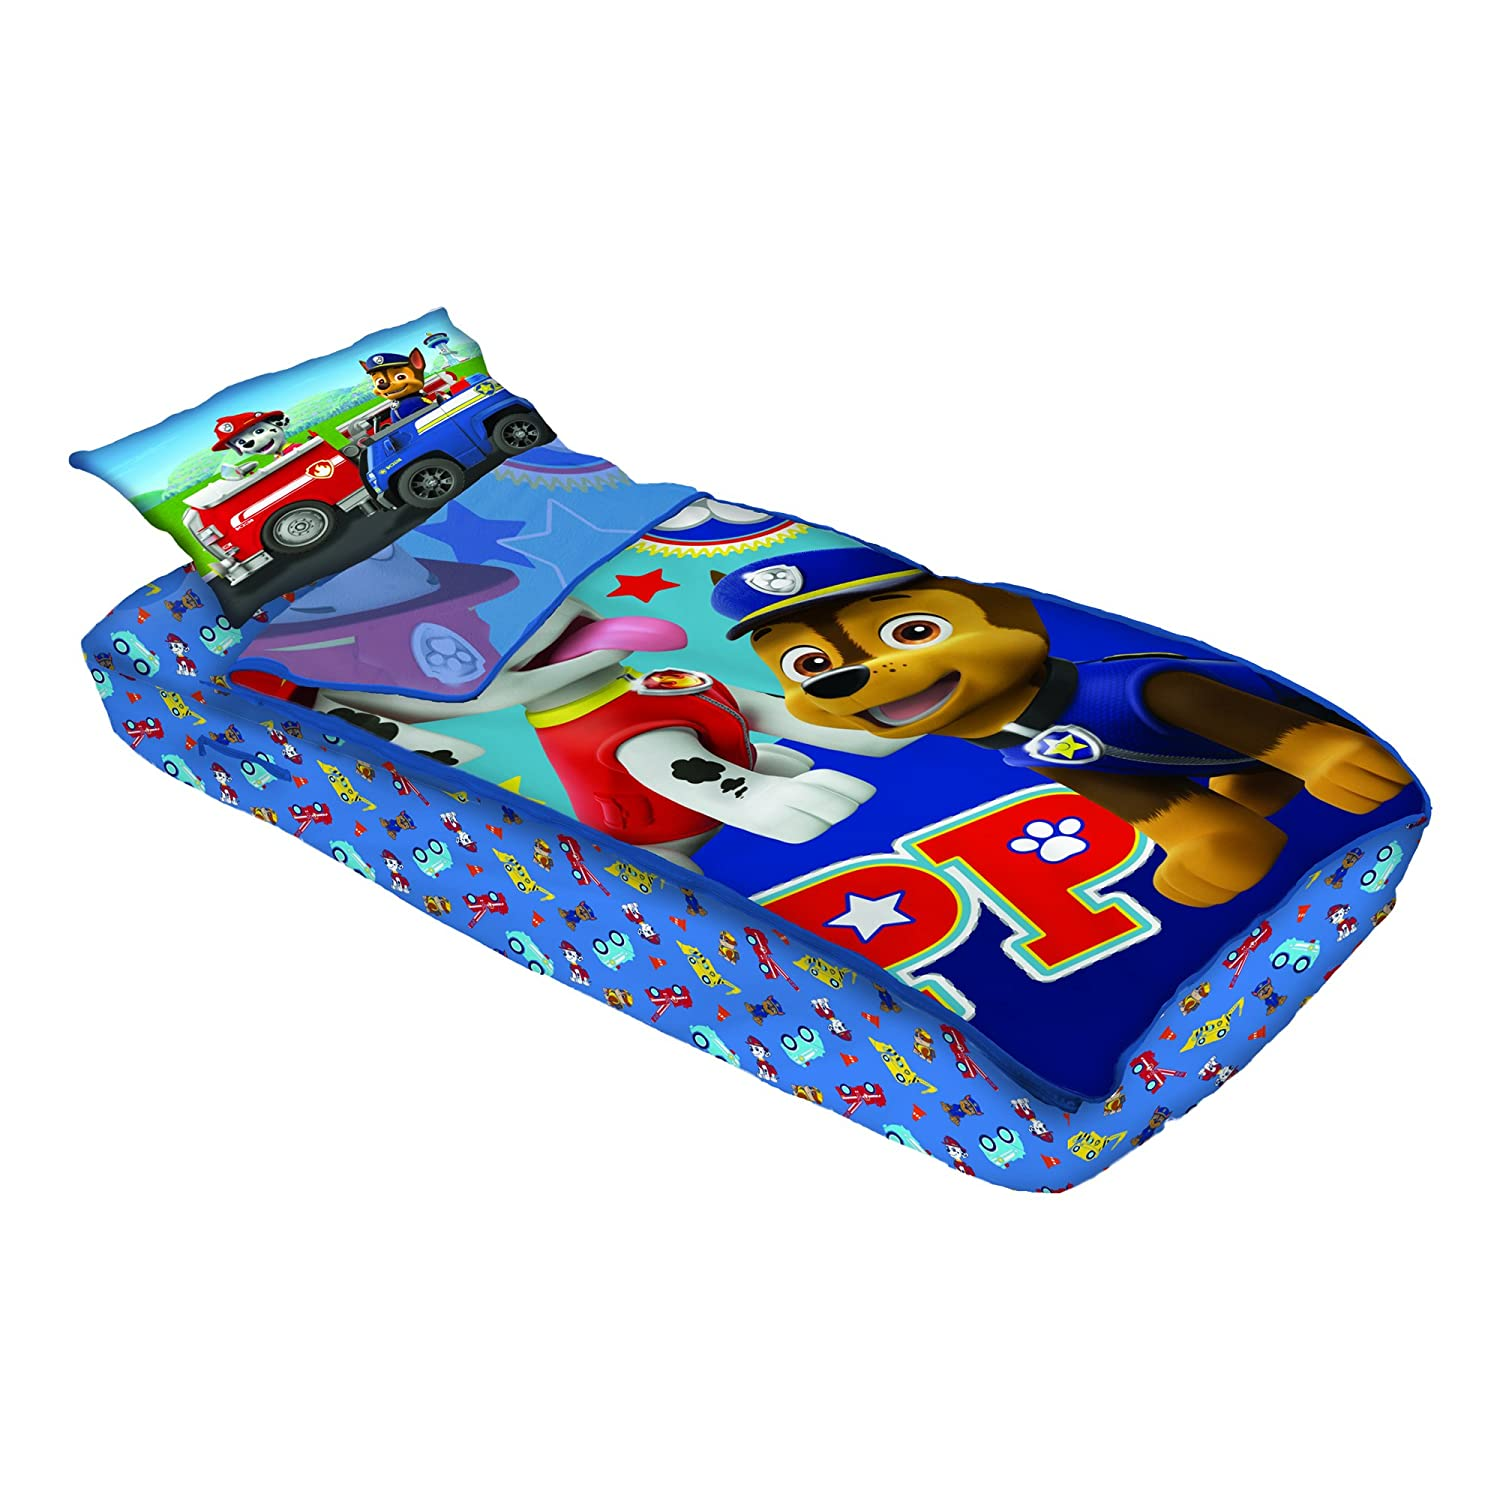 Paw Patrol Zip It Bedding Set 3 Piece Boys Kids Toddler